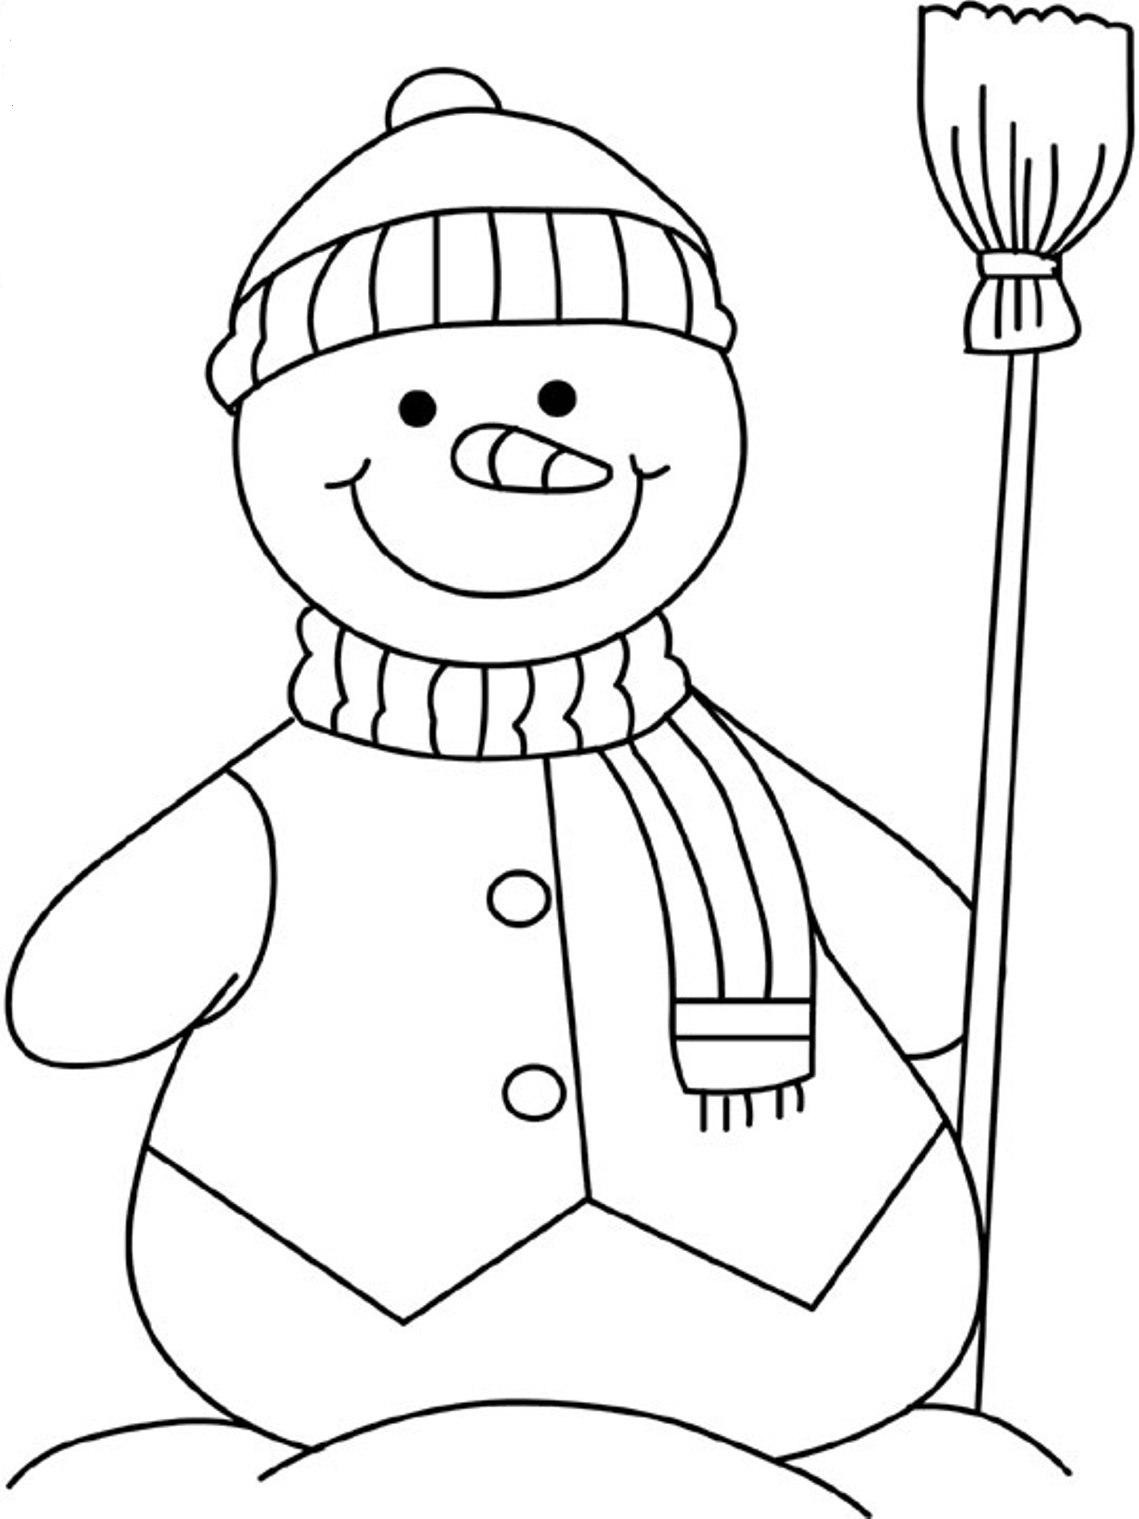 snowman for coloring snowman coloring pages for preschool at getcoloringscom snowman for coloring